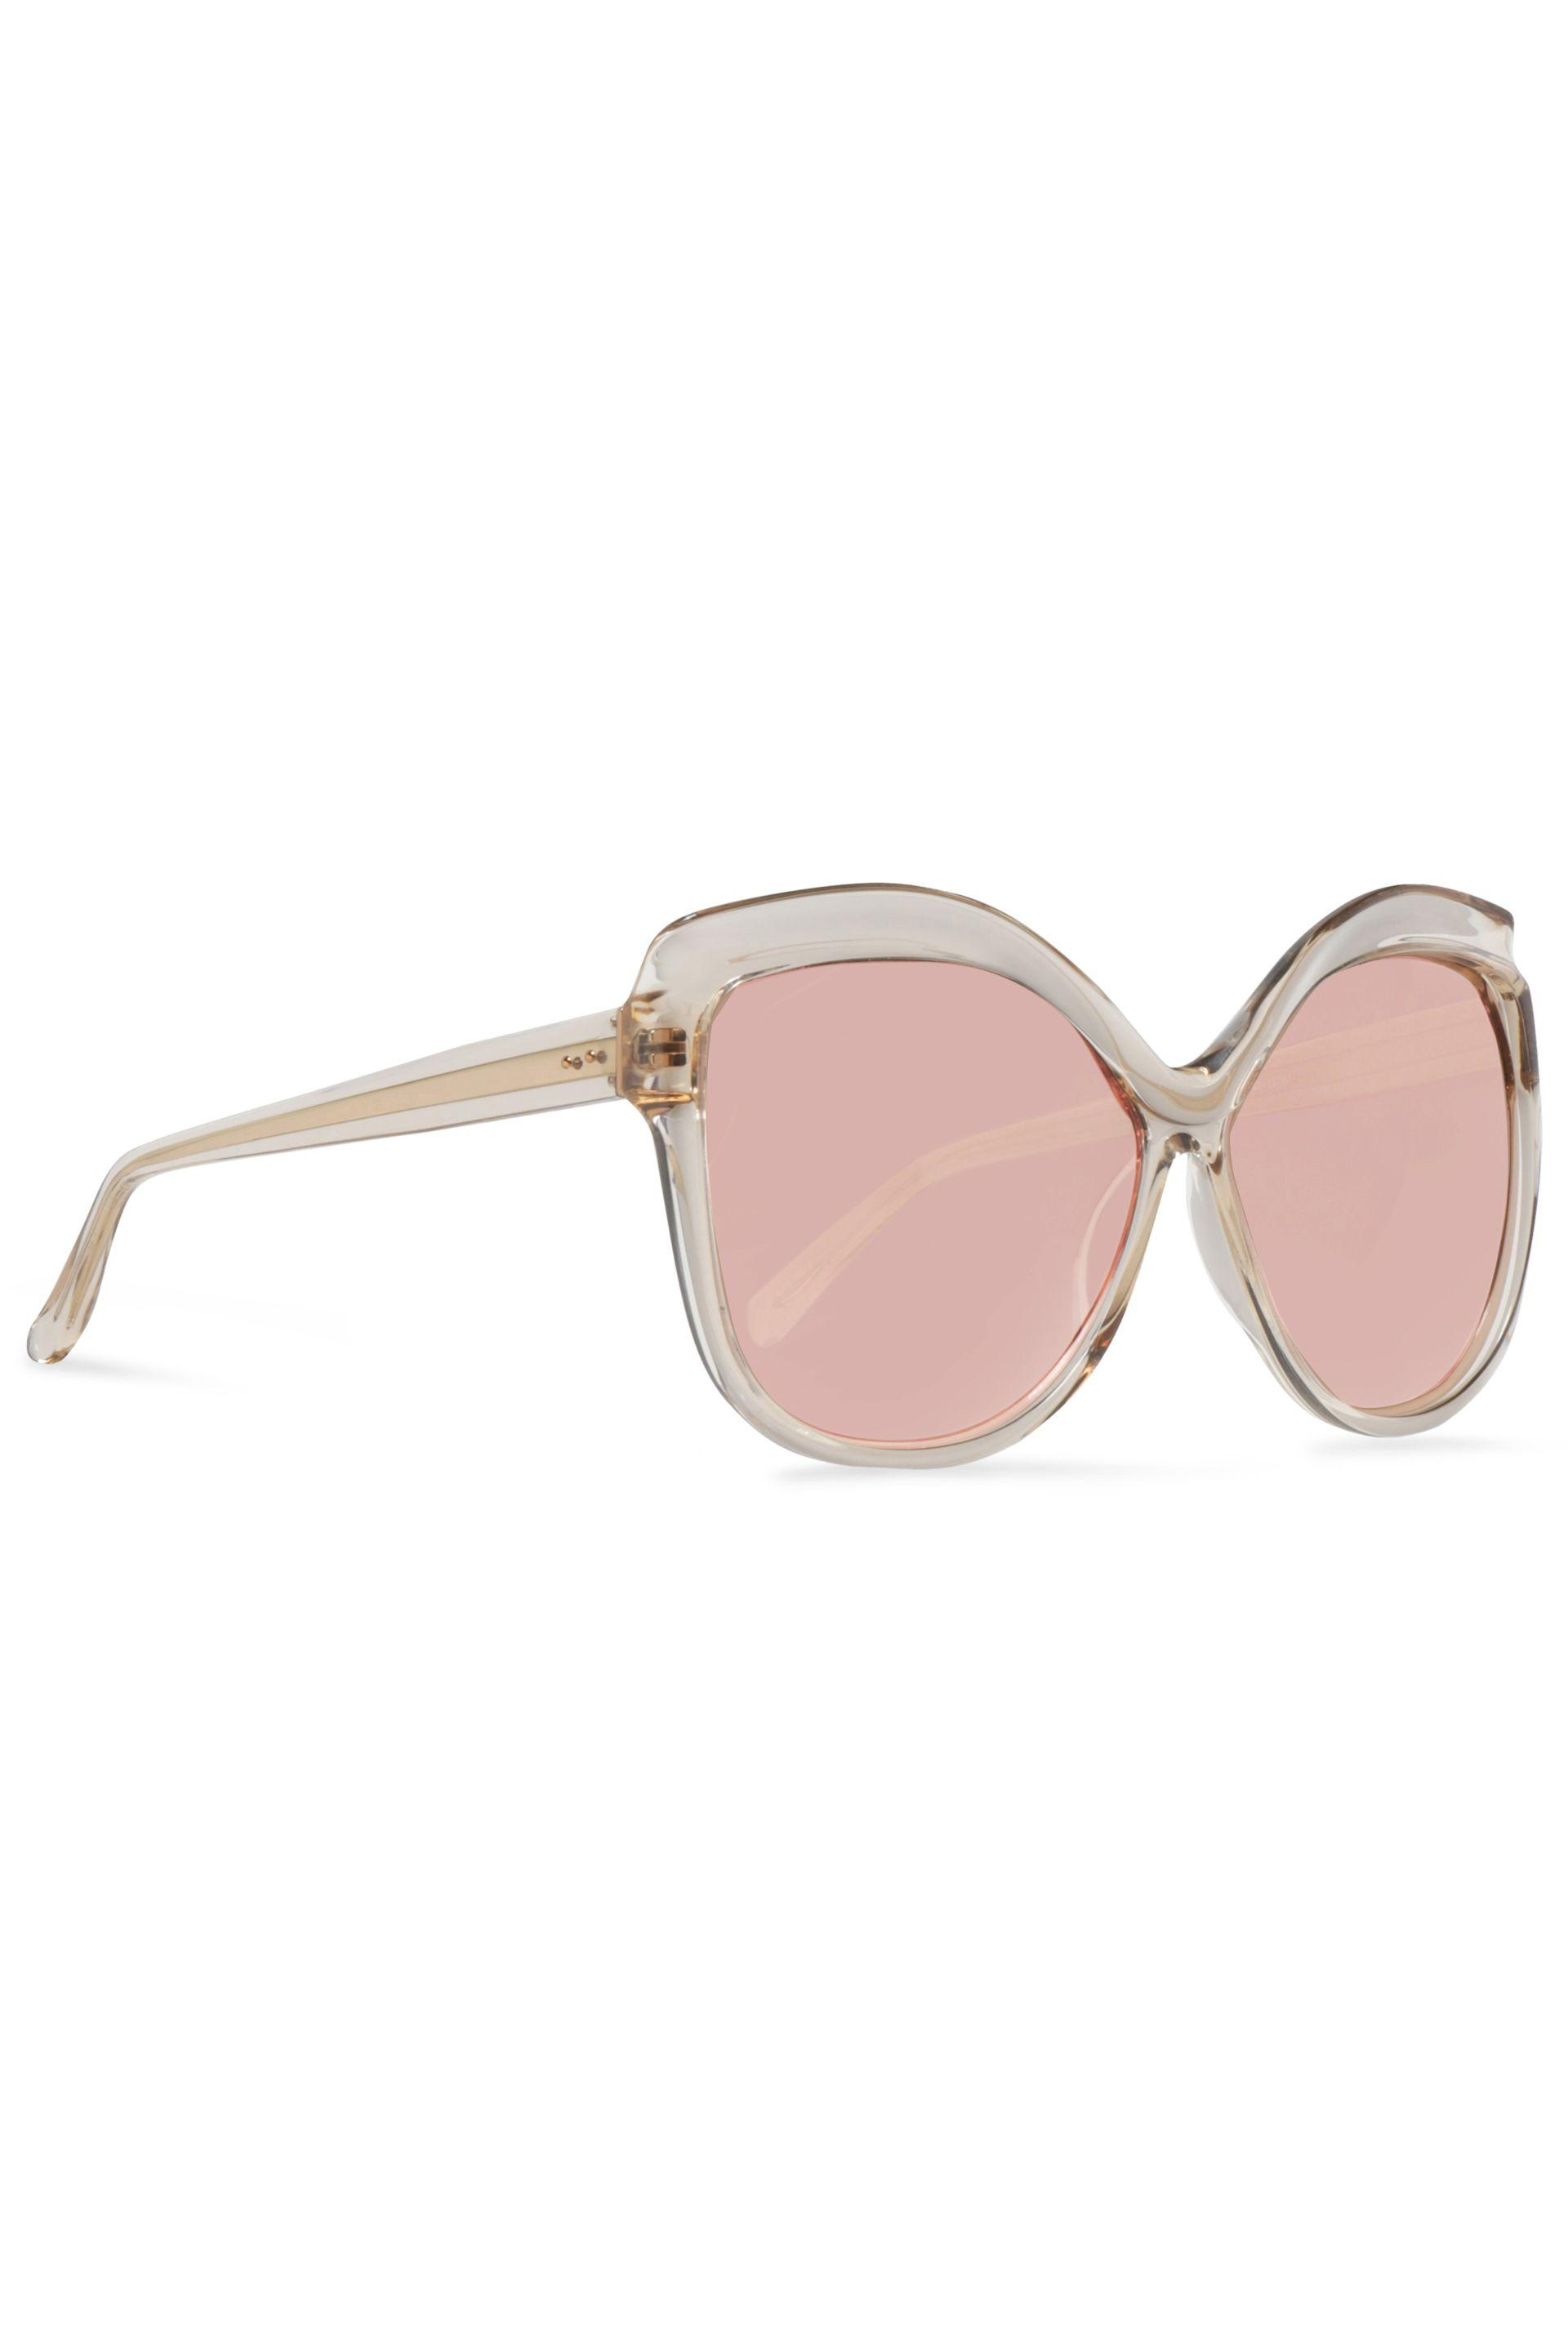 4fefaeb21c36b Gallery. Previously sold at  THE OUTNET.COM · Women s Acetate Sunglasses  Women s Mirrored Sunglasses Women s Cat Eye Sunglasses